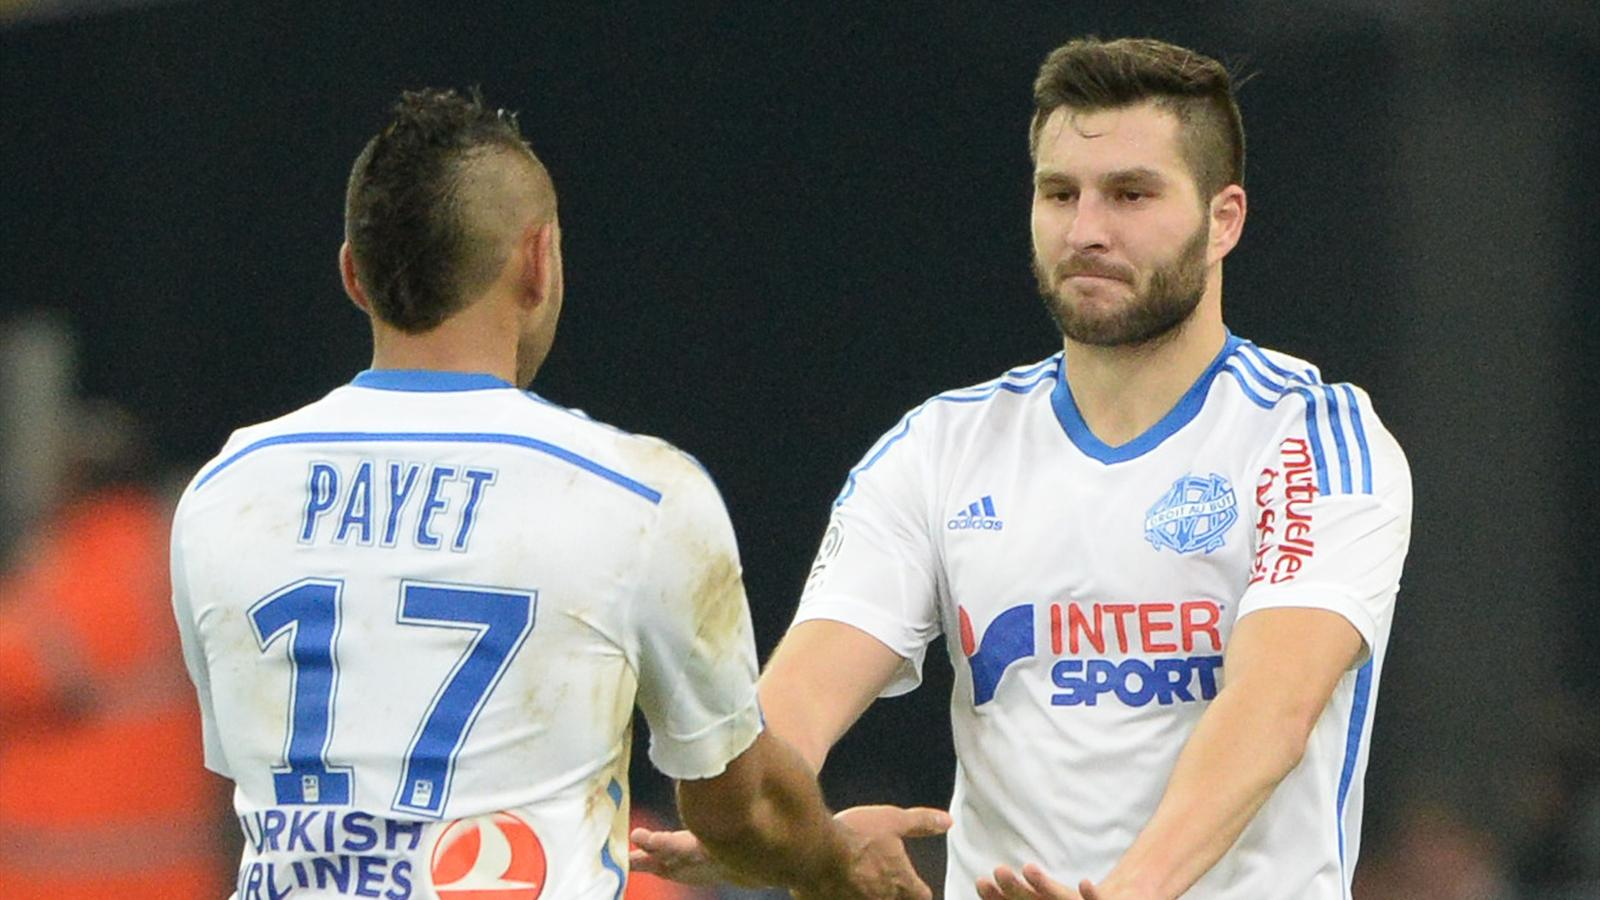 FC Metz - Olympique de Marseille en direct - 1er Mai 2015